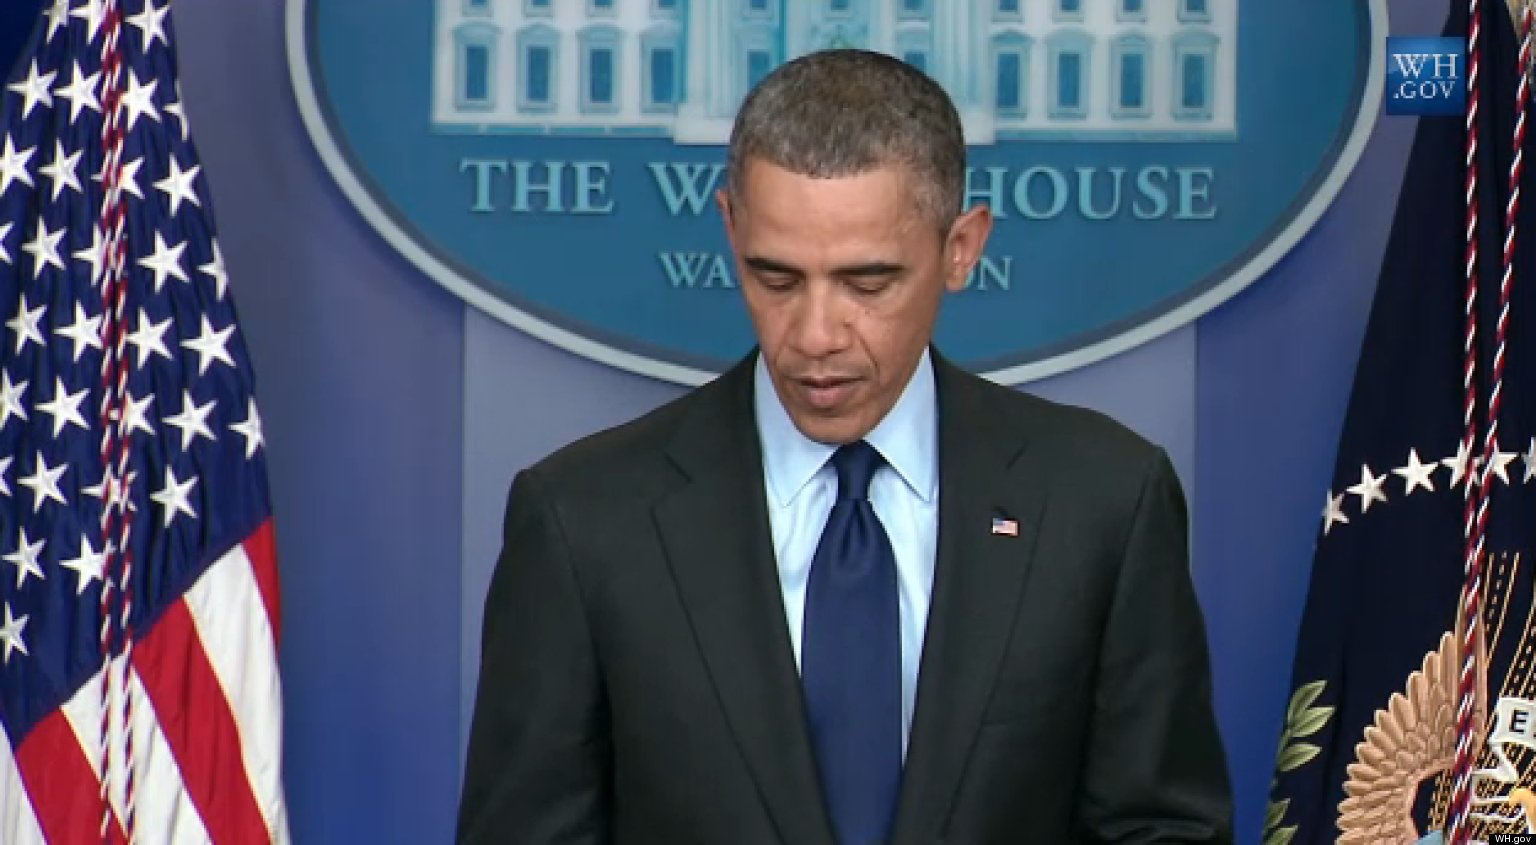 Obama: 'A Tough Week'